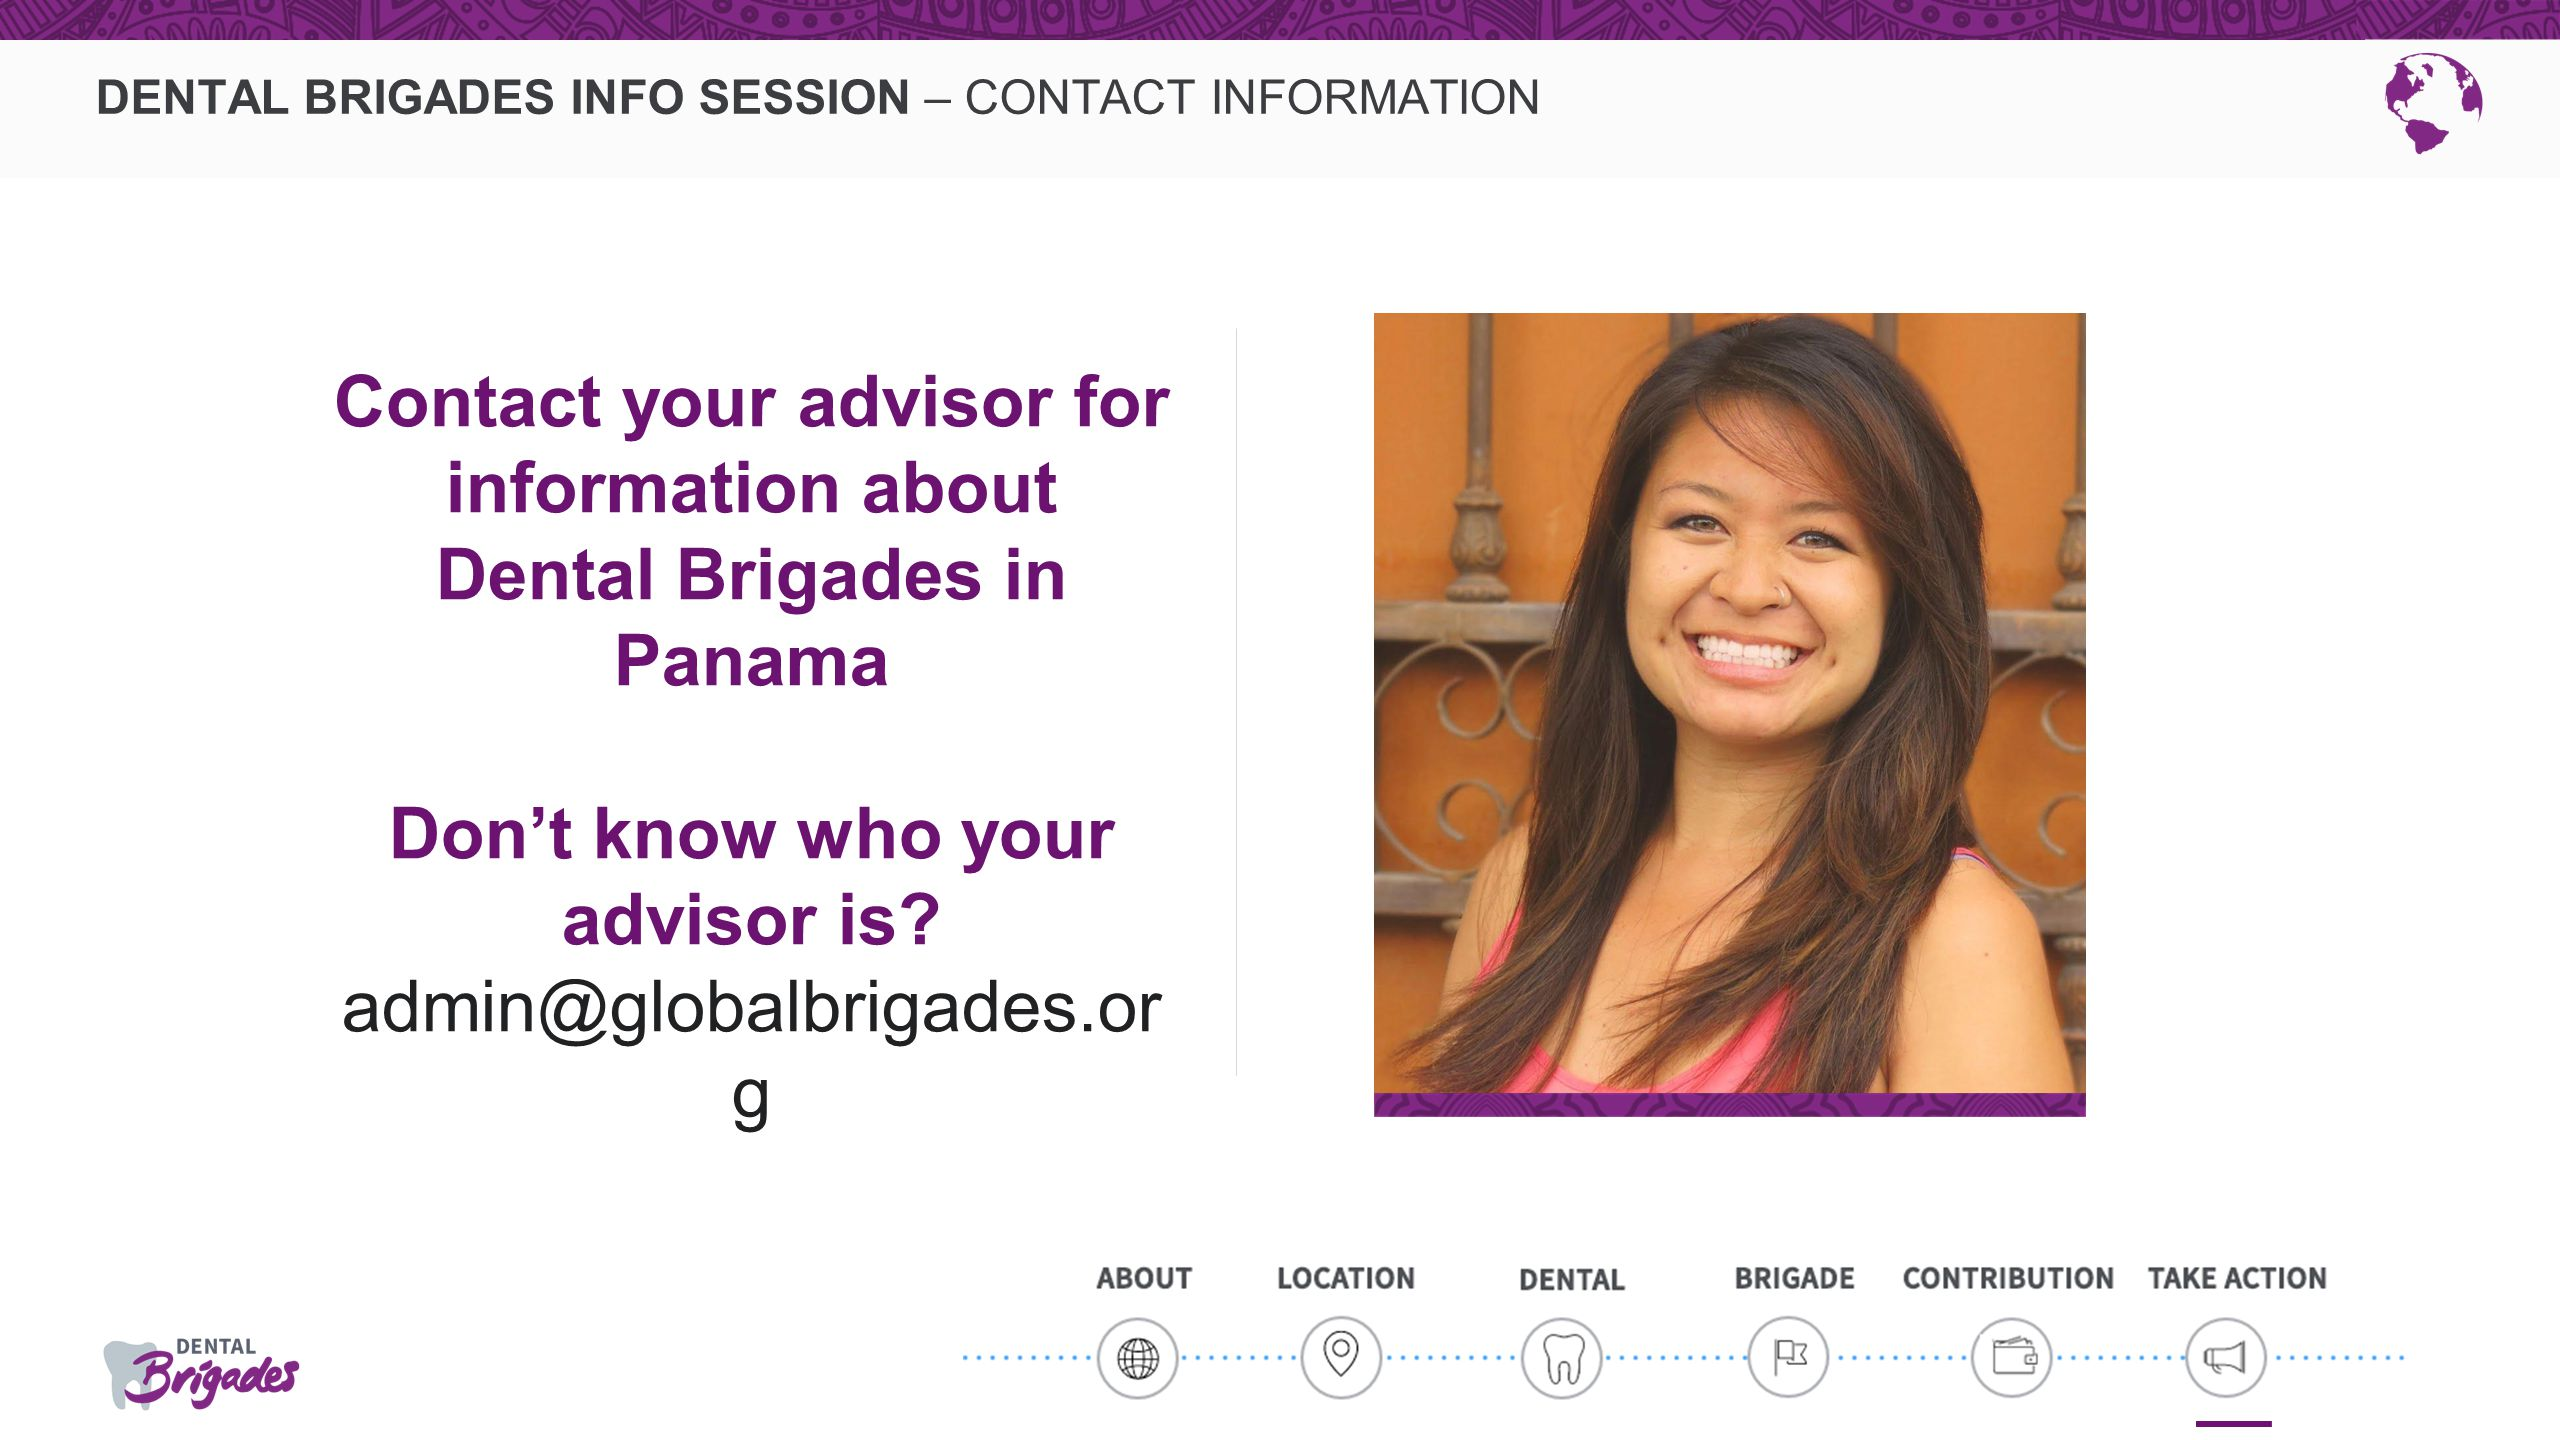 DENTAL BRIGADES INFO SESSION – CONTACT INFORMATION Contact your advisor for information about Dental Brigades in Panama Don't know who your advisor is